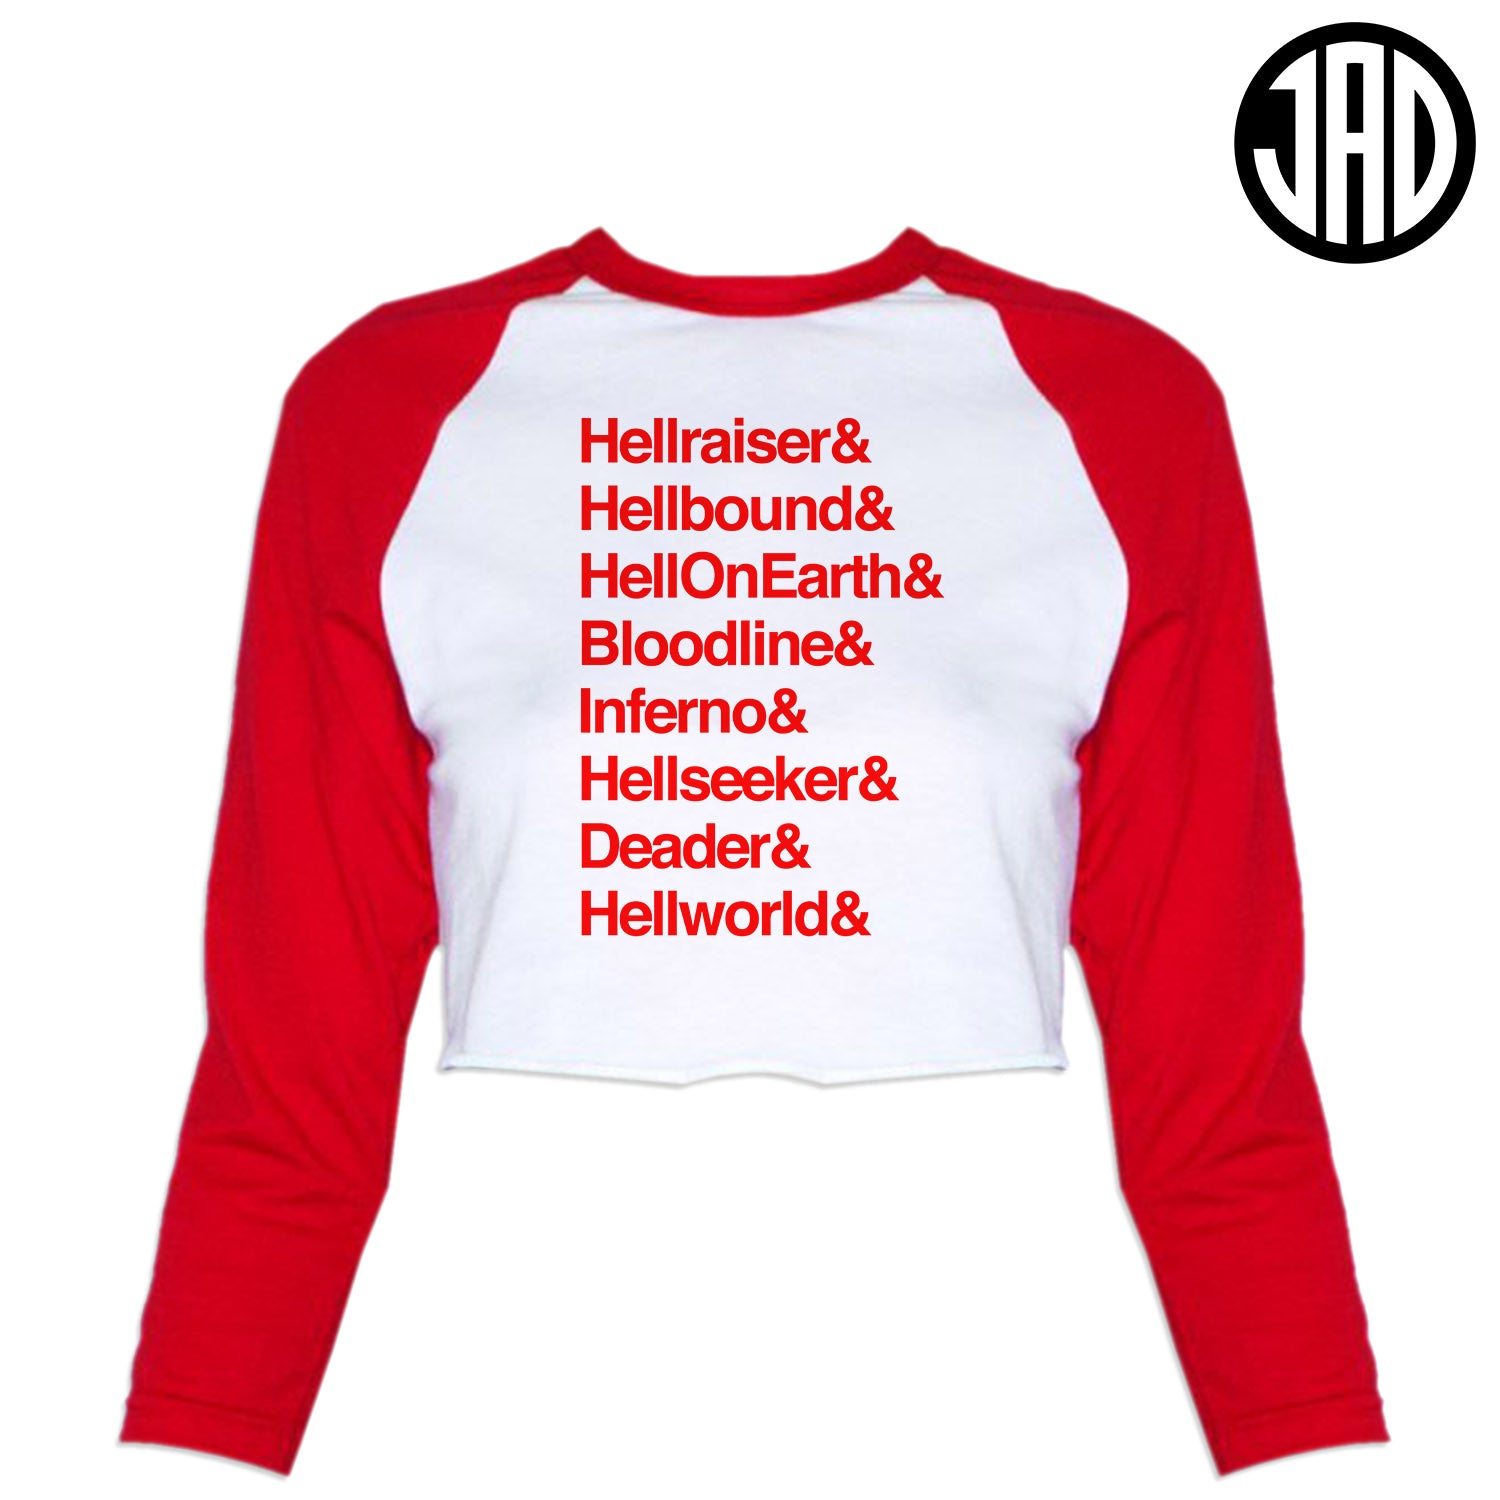 Hell 8 - Women's Cropped Baseball Tee